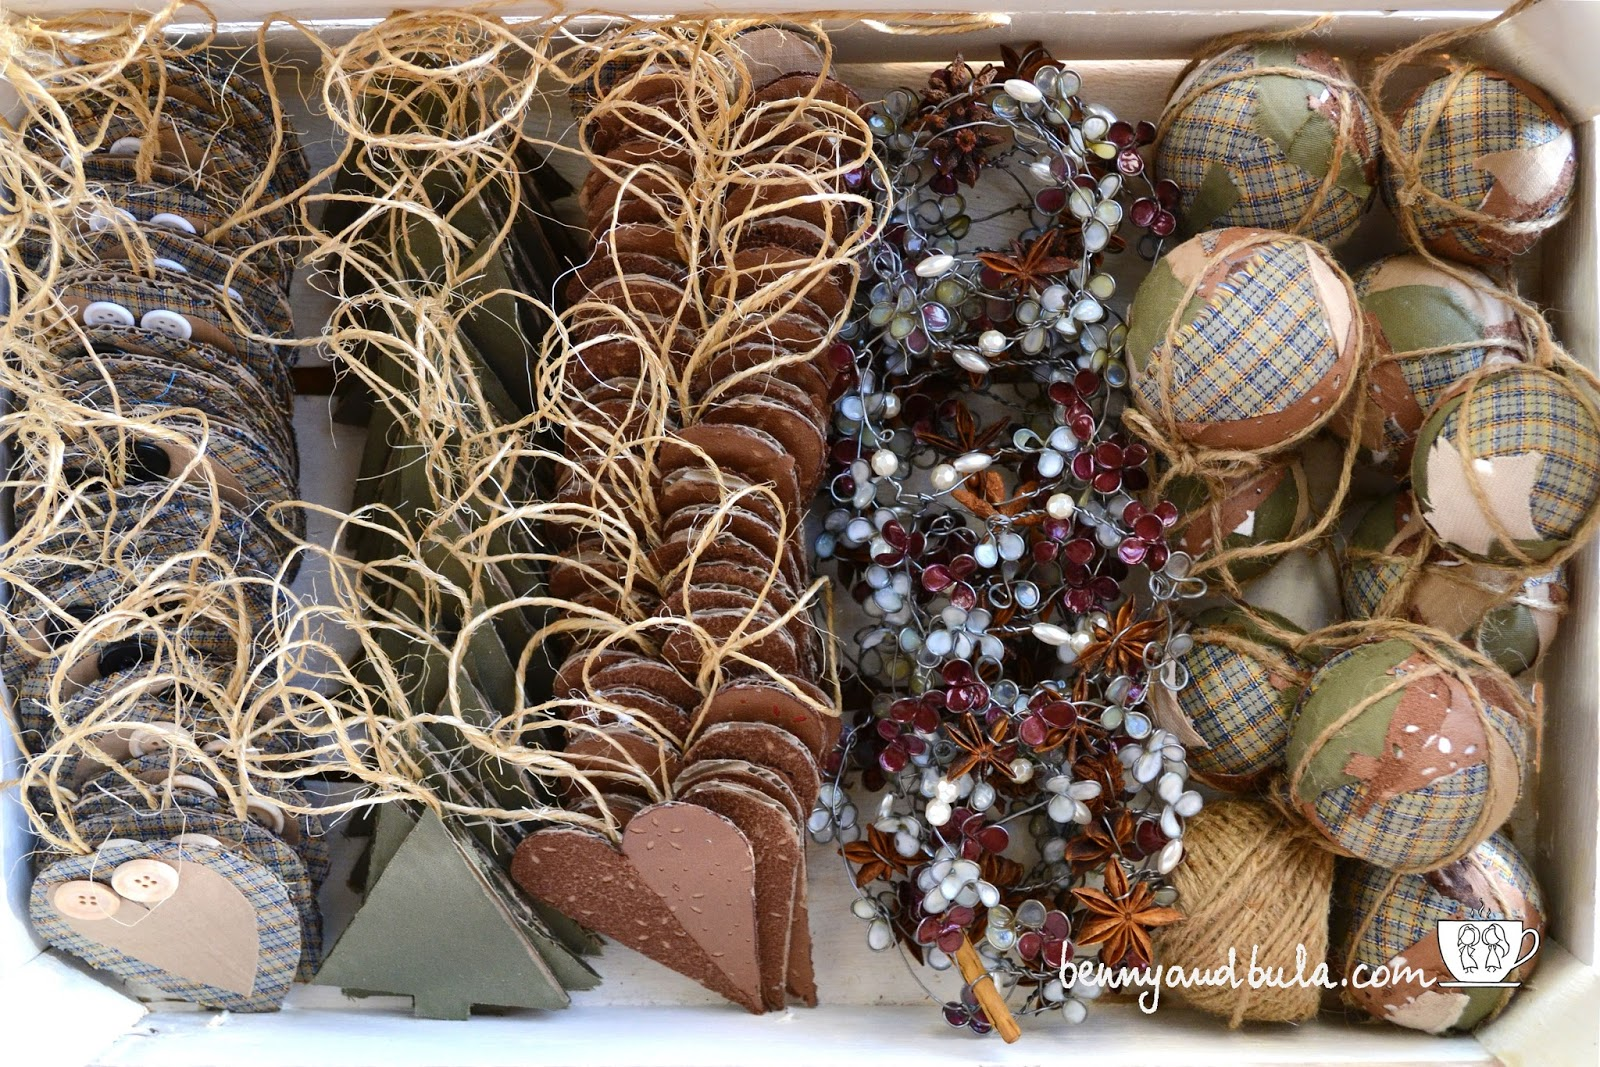 Decorazioni Natalizie Faidate/DIY Christmas Ornaments ideas